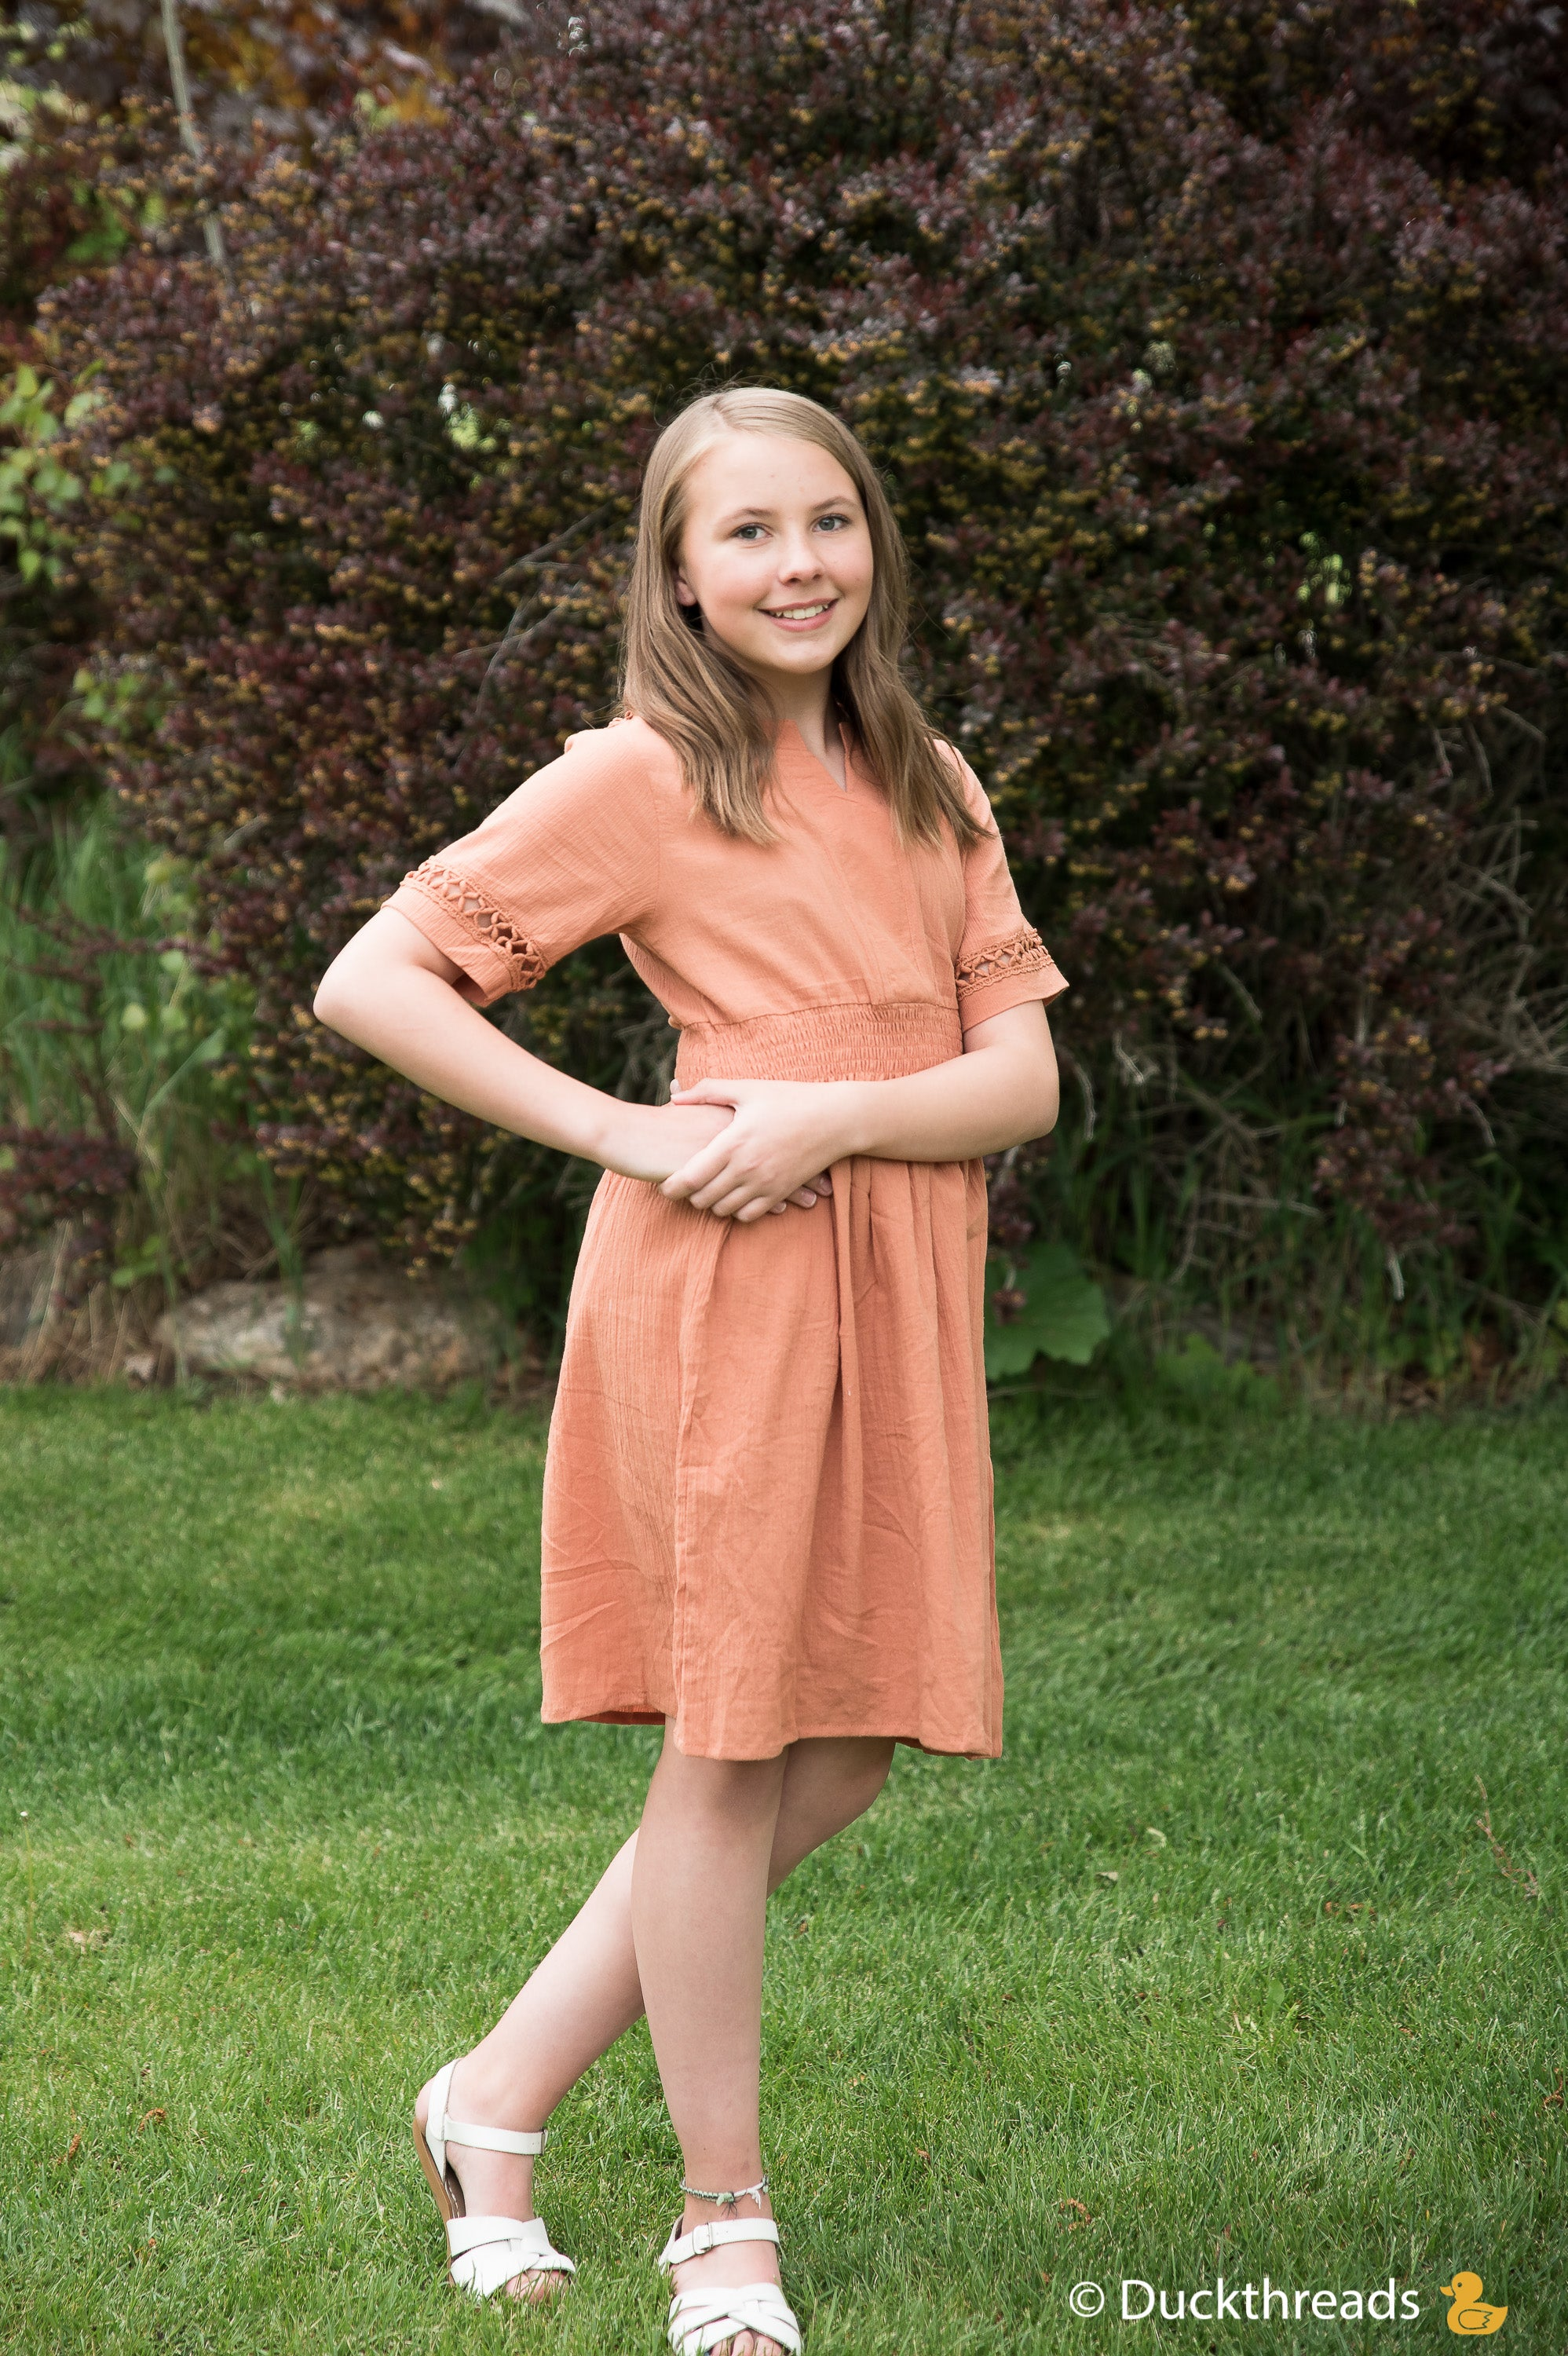 Girls Summer Flare Dress with Sleeve Cut-Out Details - Duckthreads